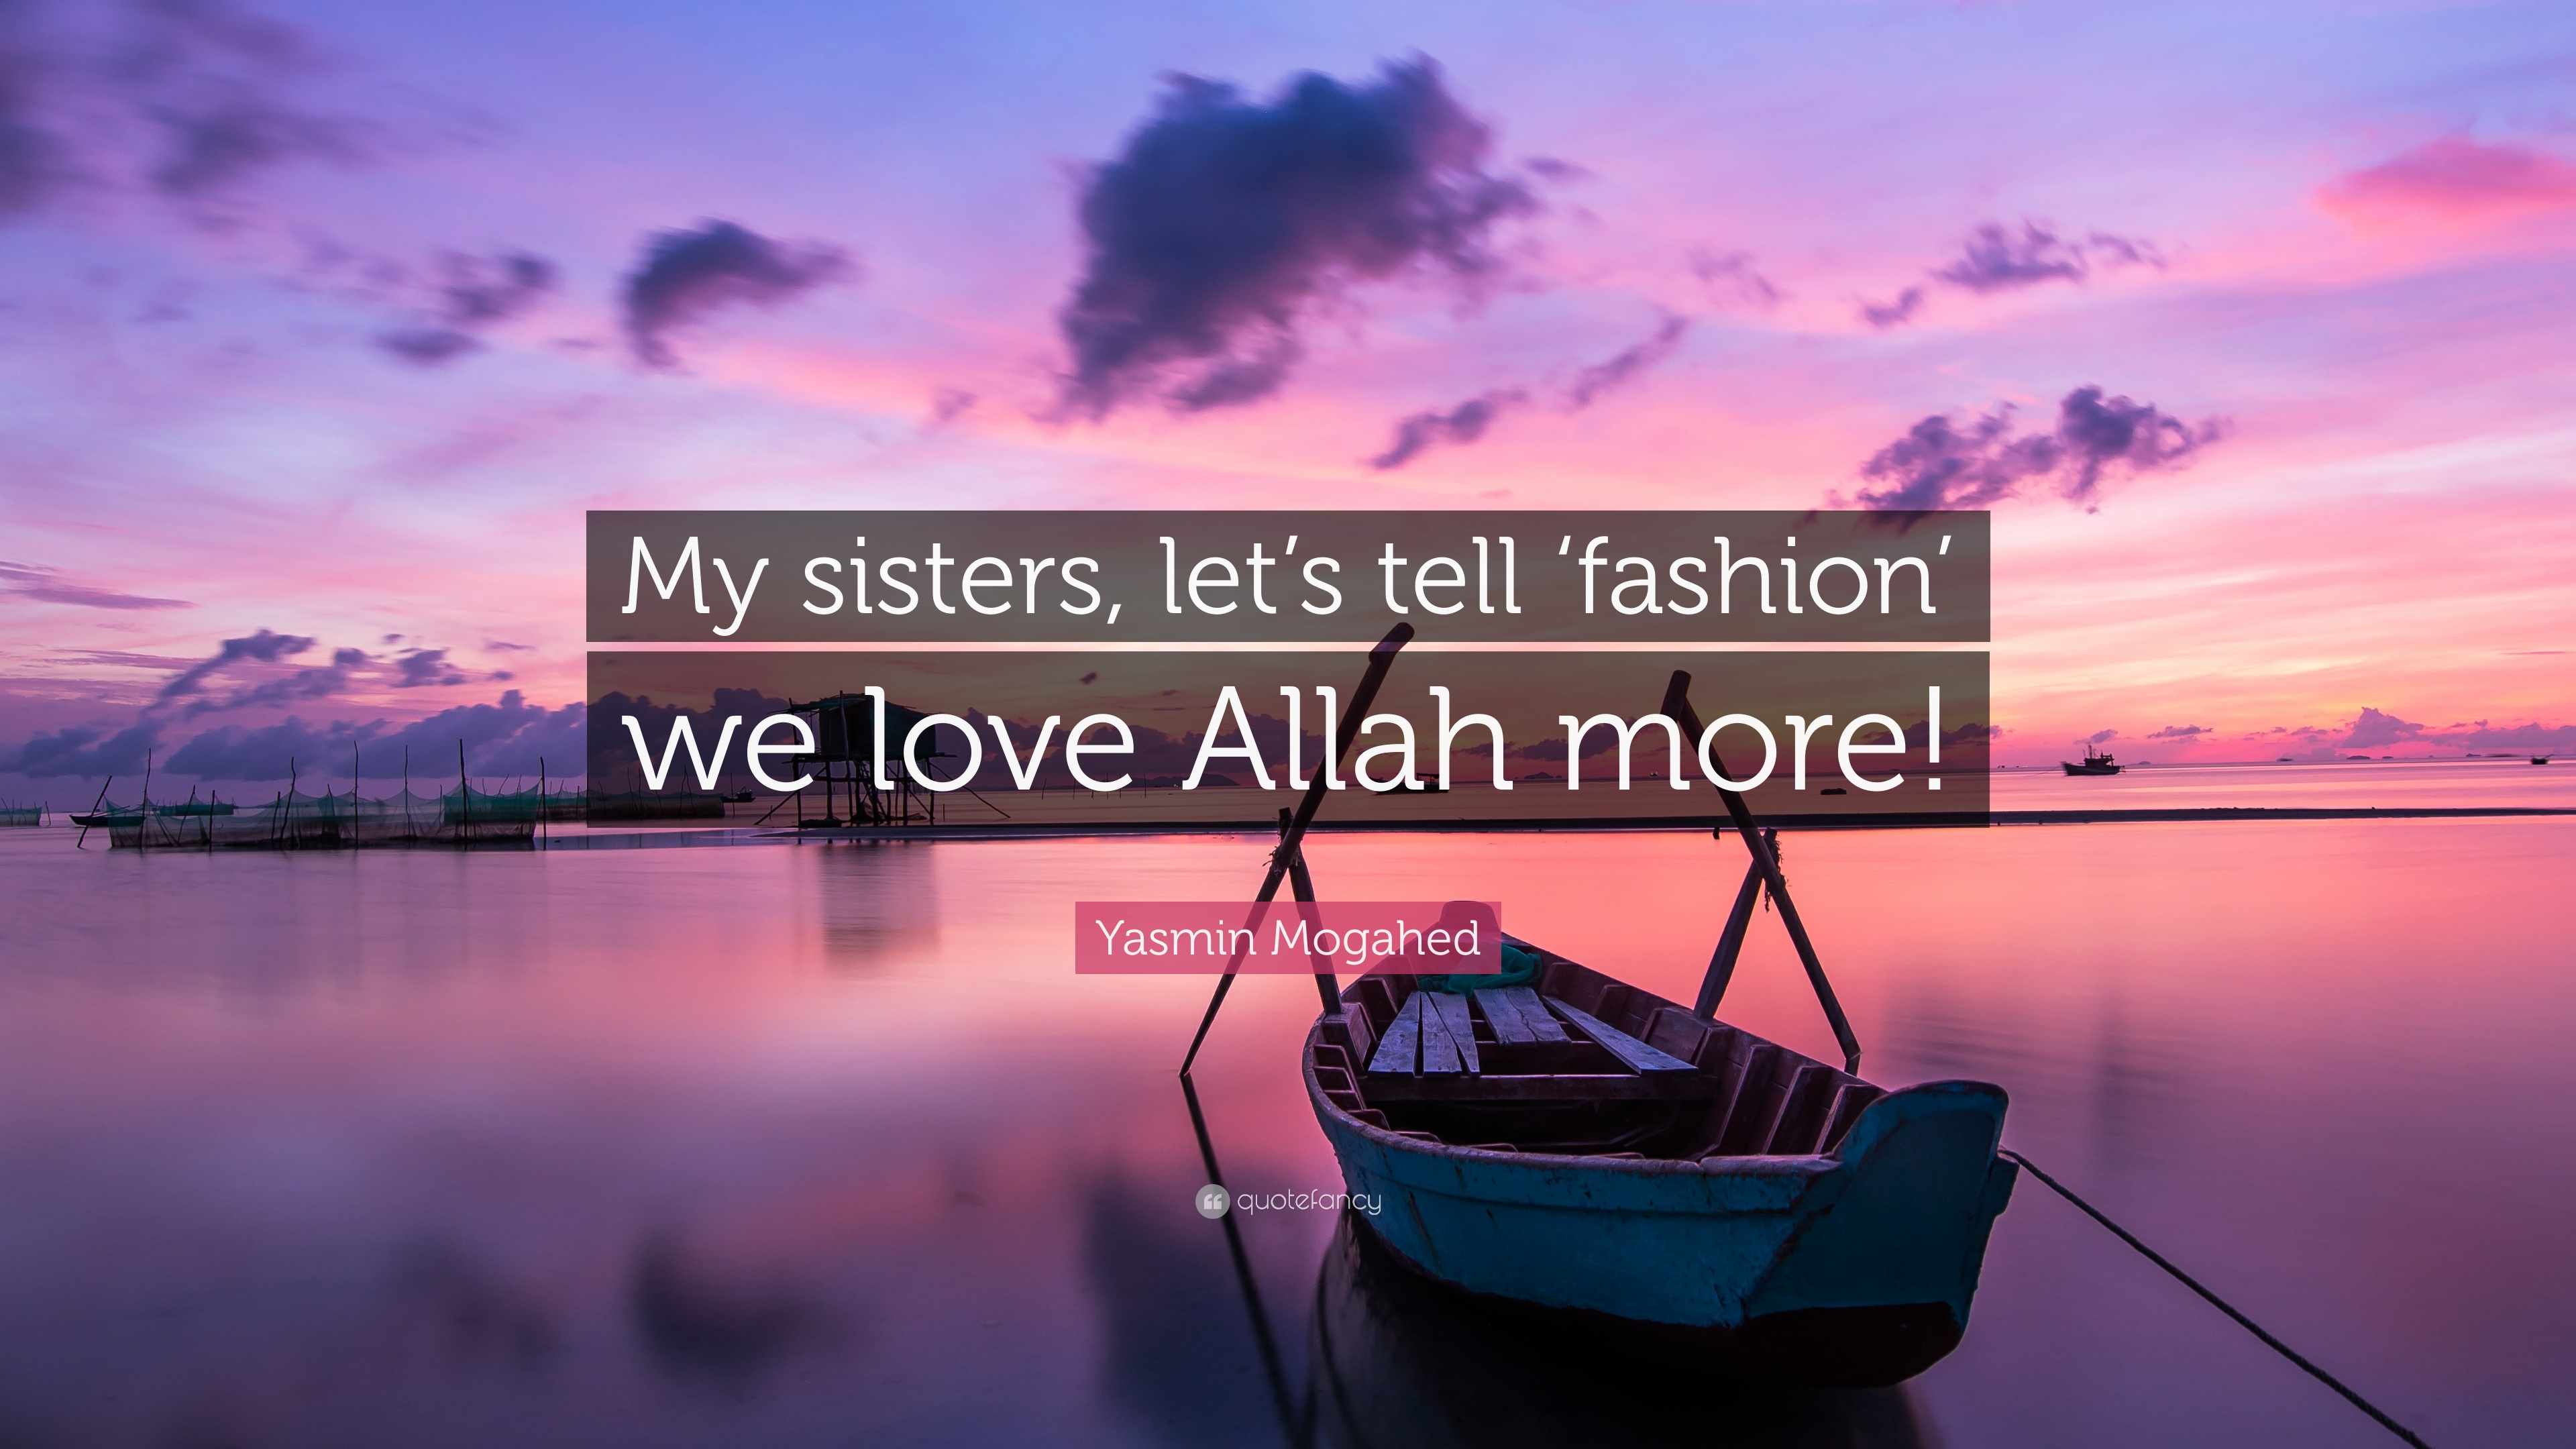 We Love Allah Wallpaper : Yasmin Mogahed Quote: ?My sisters, let s tell fashion we love Allah more!? (10 wallpapers ...